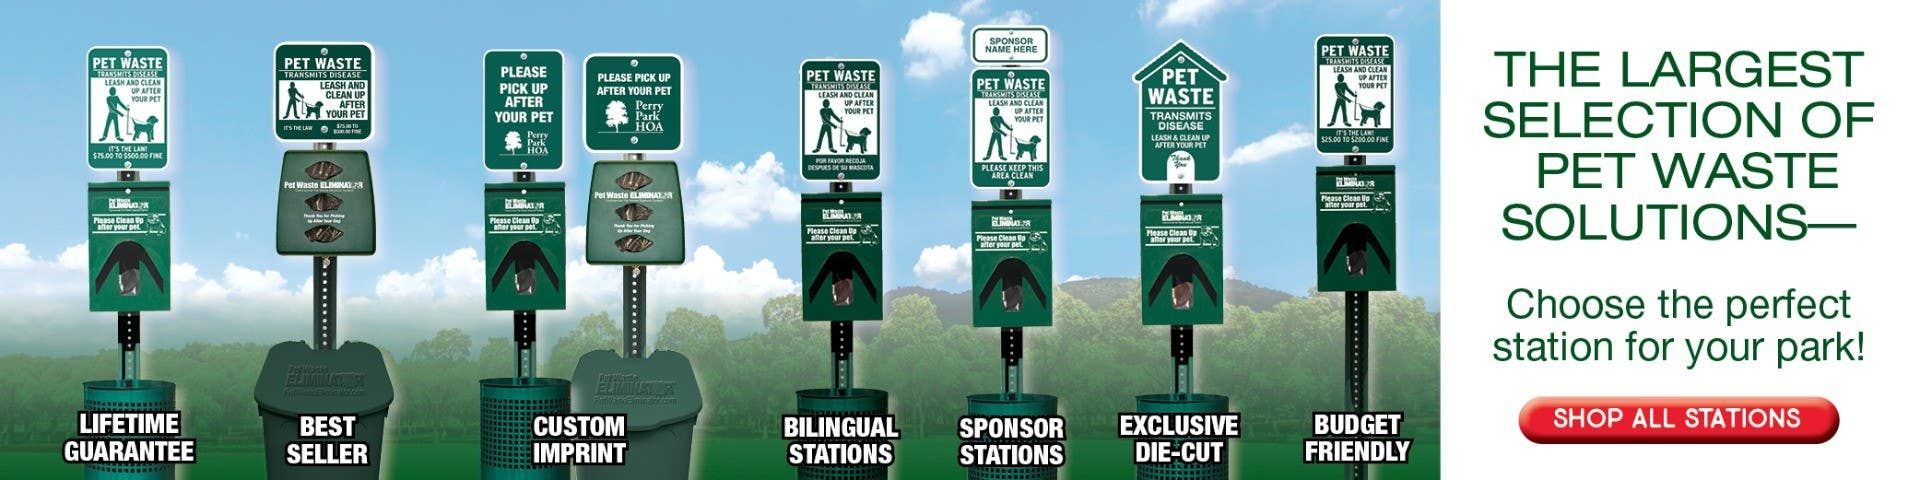 The largest selection of pet waste soultions. Choose the perfect station for your park.